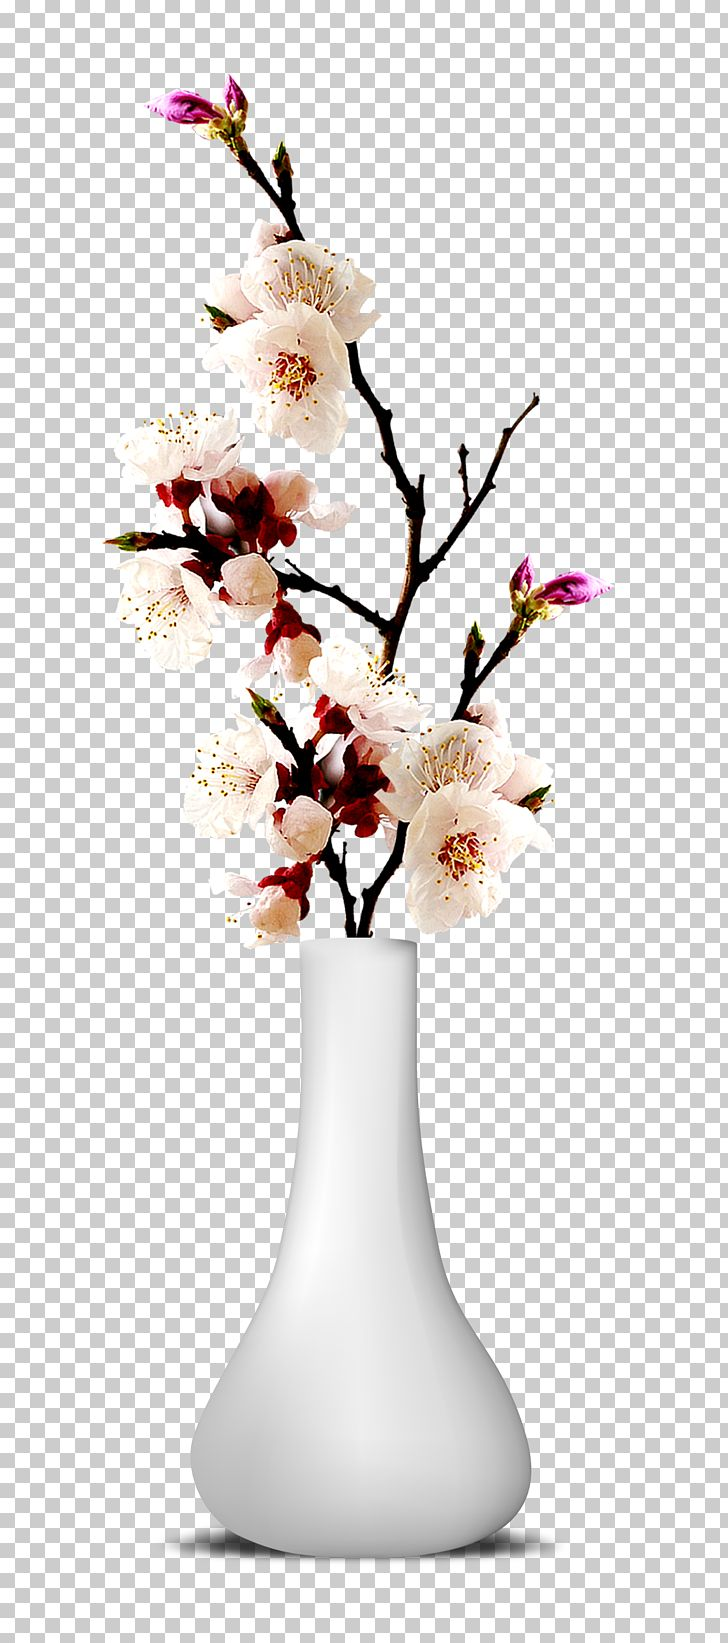 210 & Flower Vase PNG Clipart Artificial Flower Blossom Branch ...